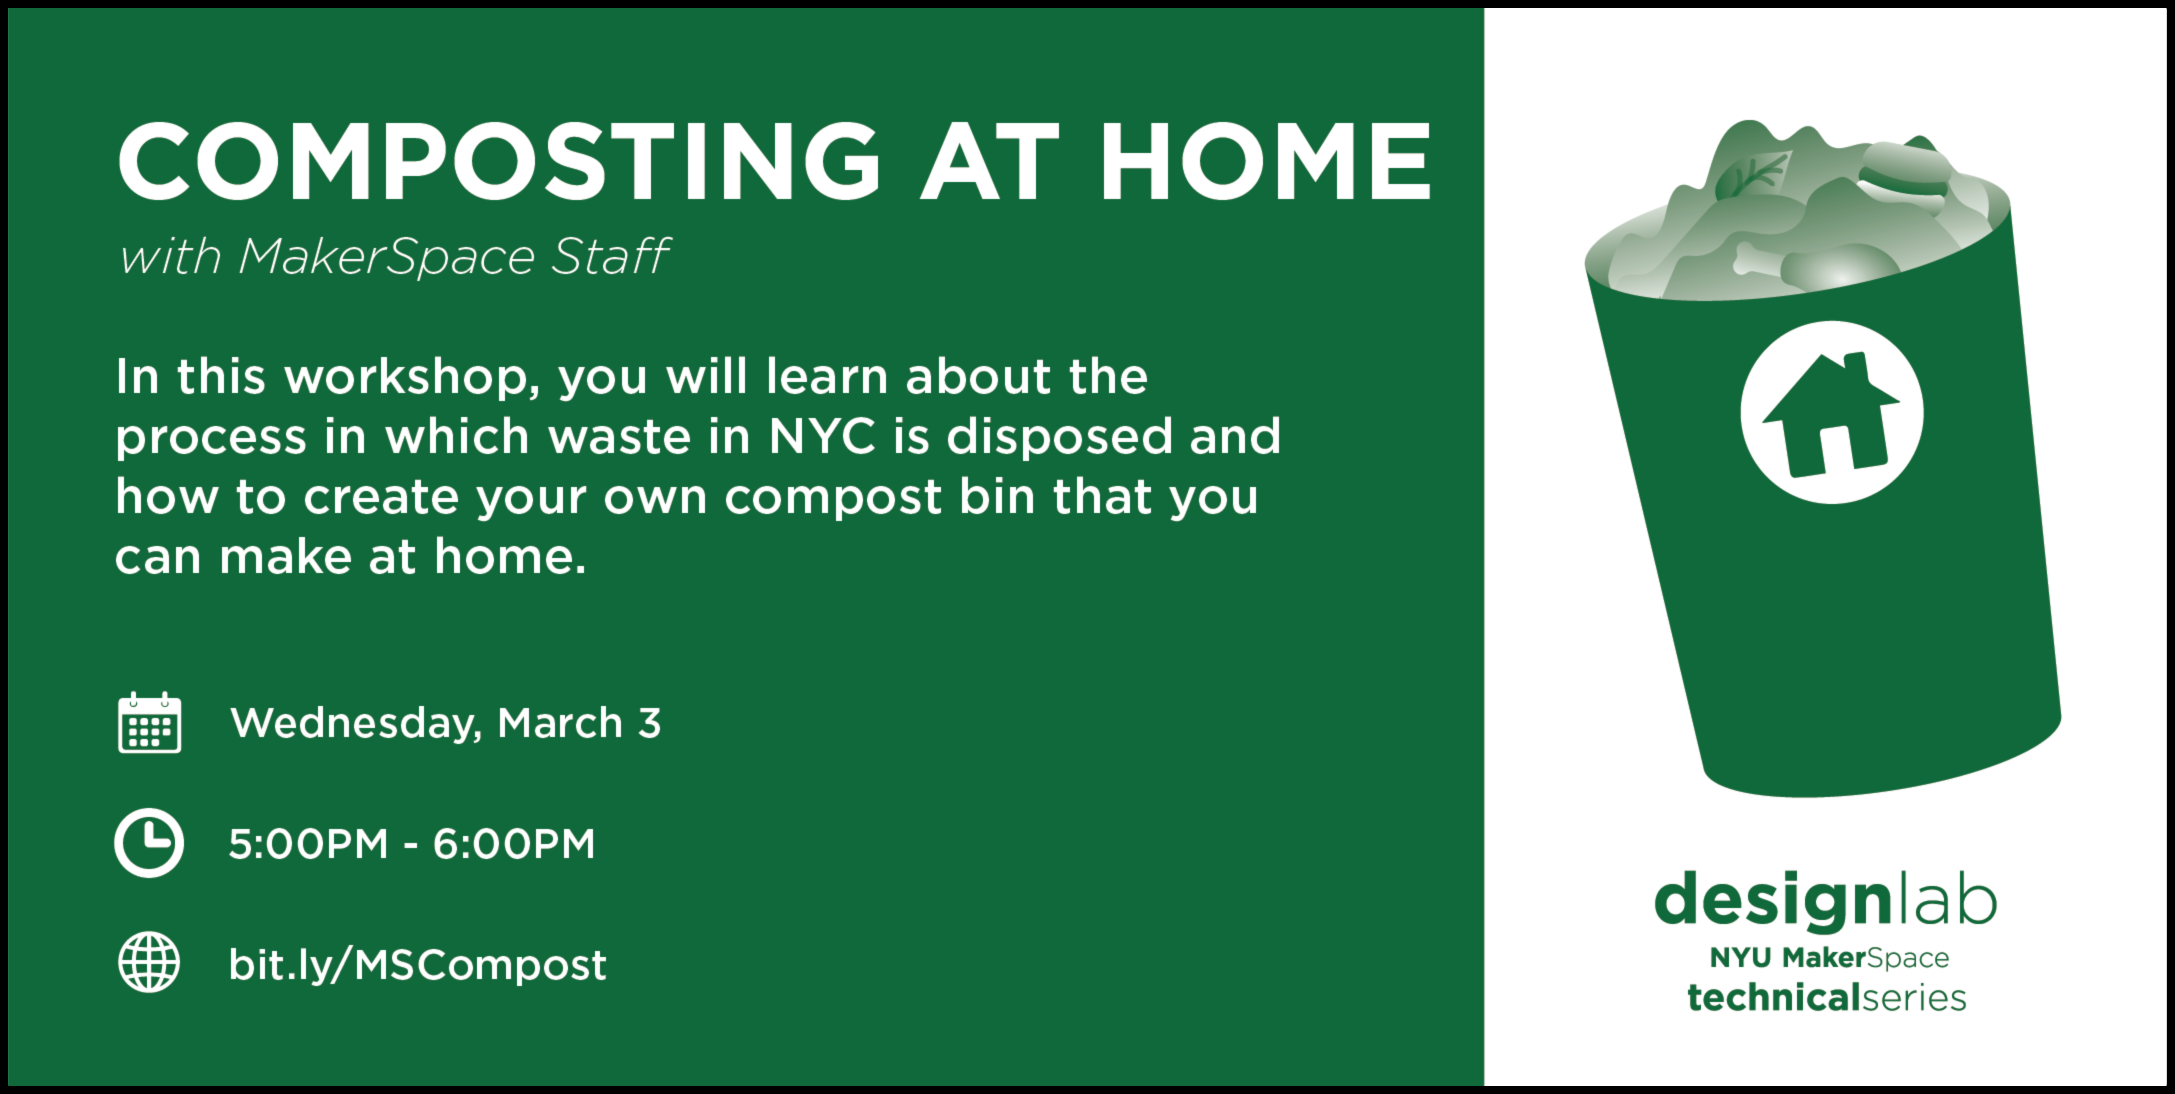 Composting at Home Flyer